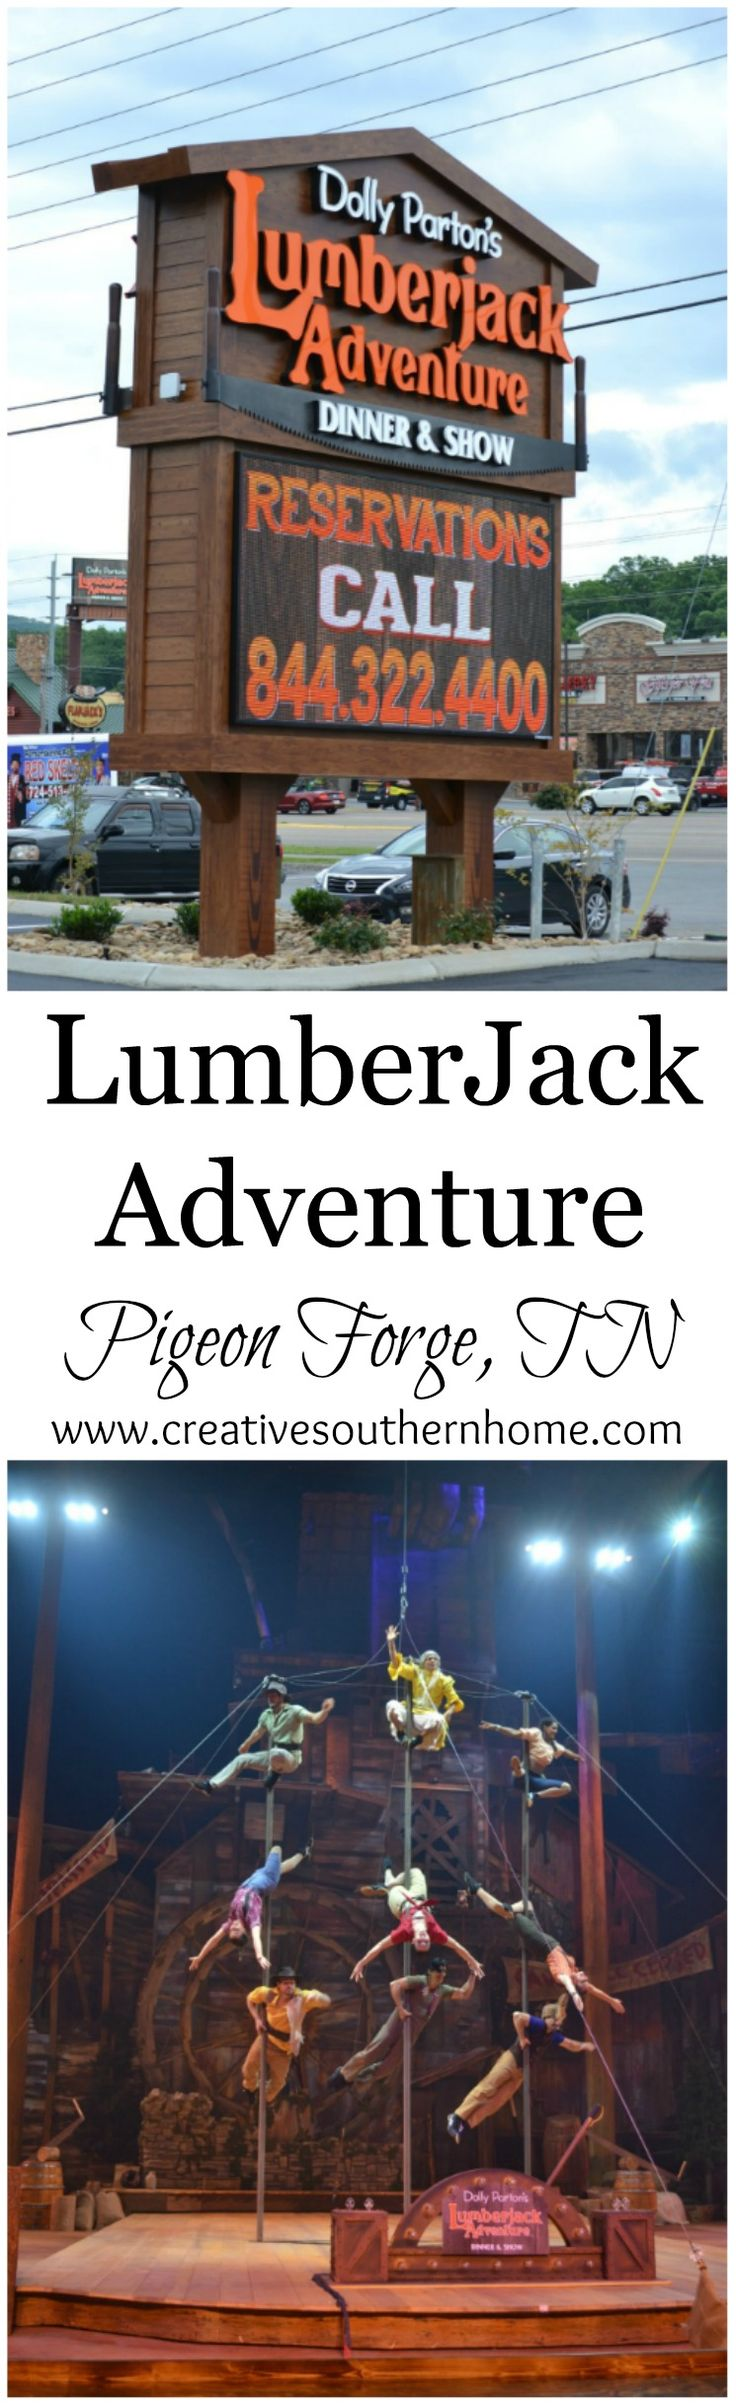 All you need to know to enjoy the Lumberjack Adventure dinner & show.